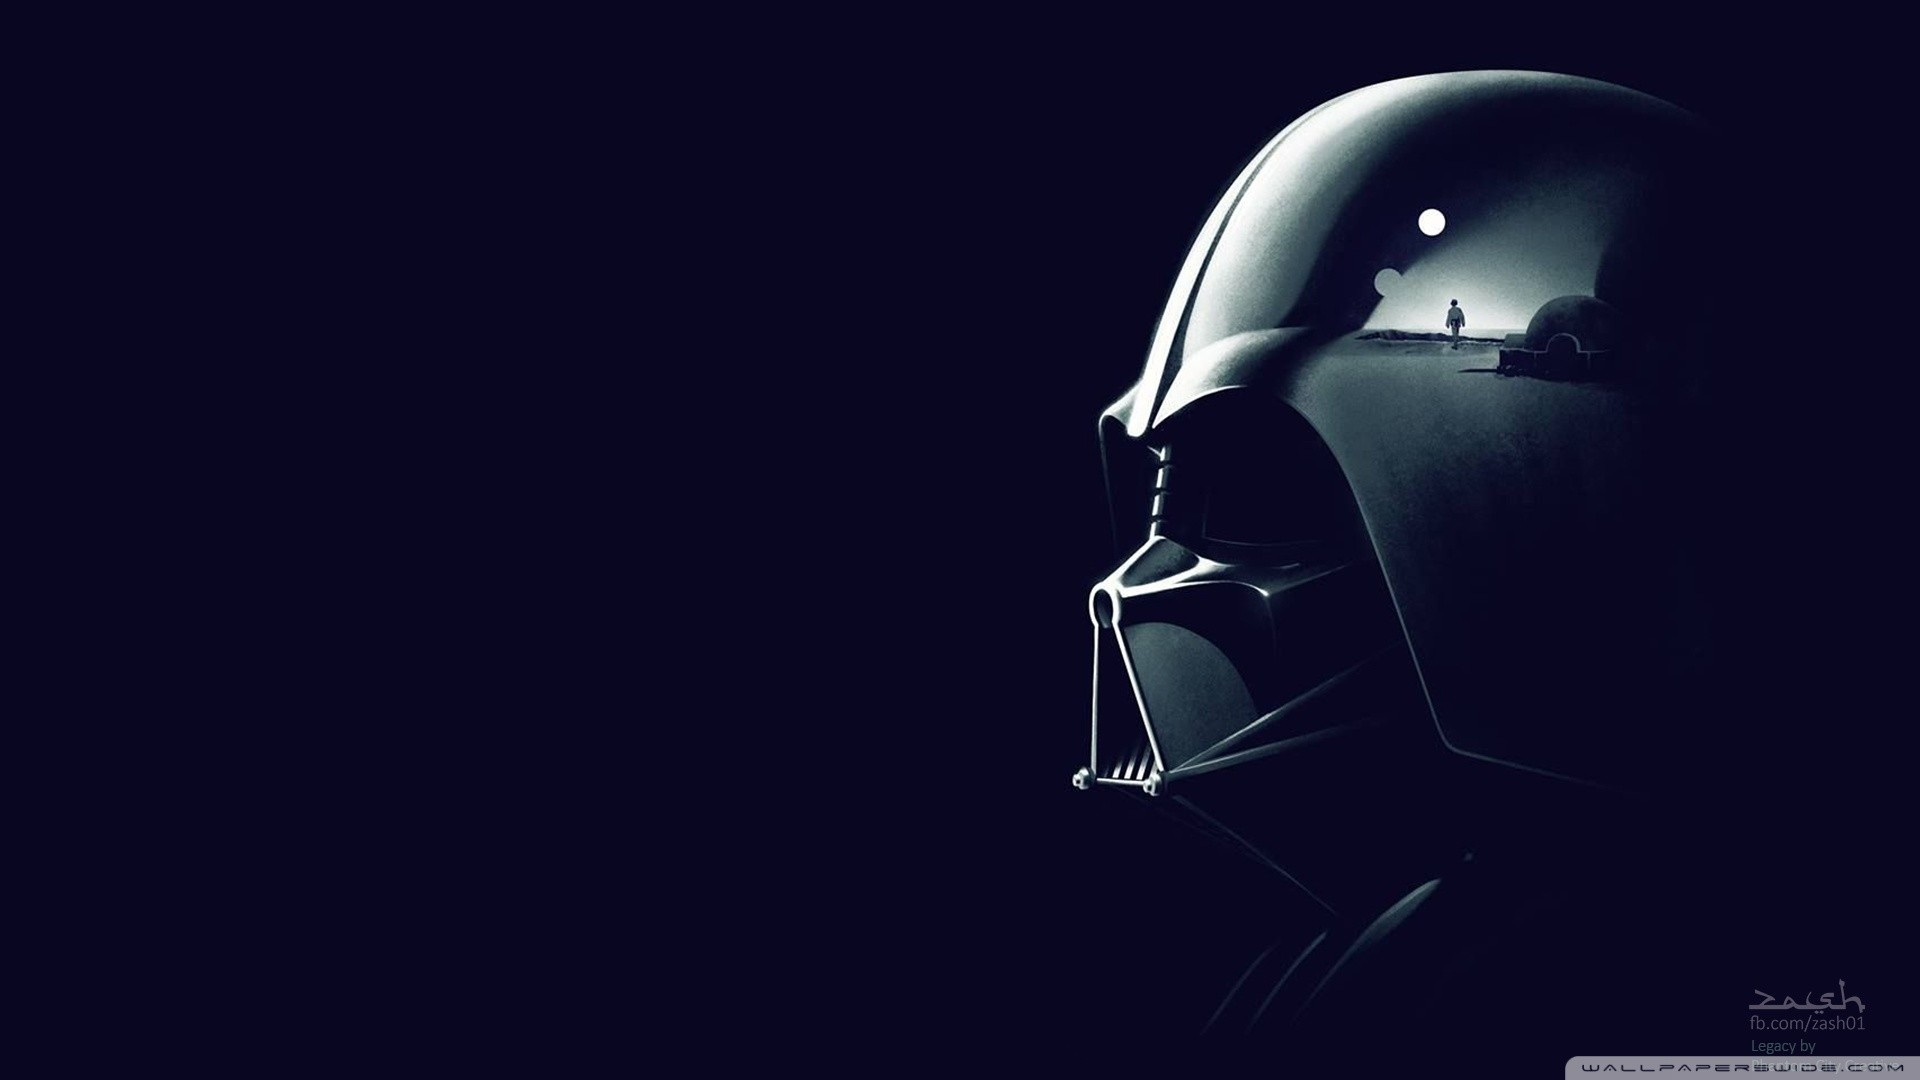 Star Wars Hd Wallpapers 1920x1080 62 Images